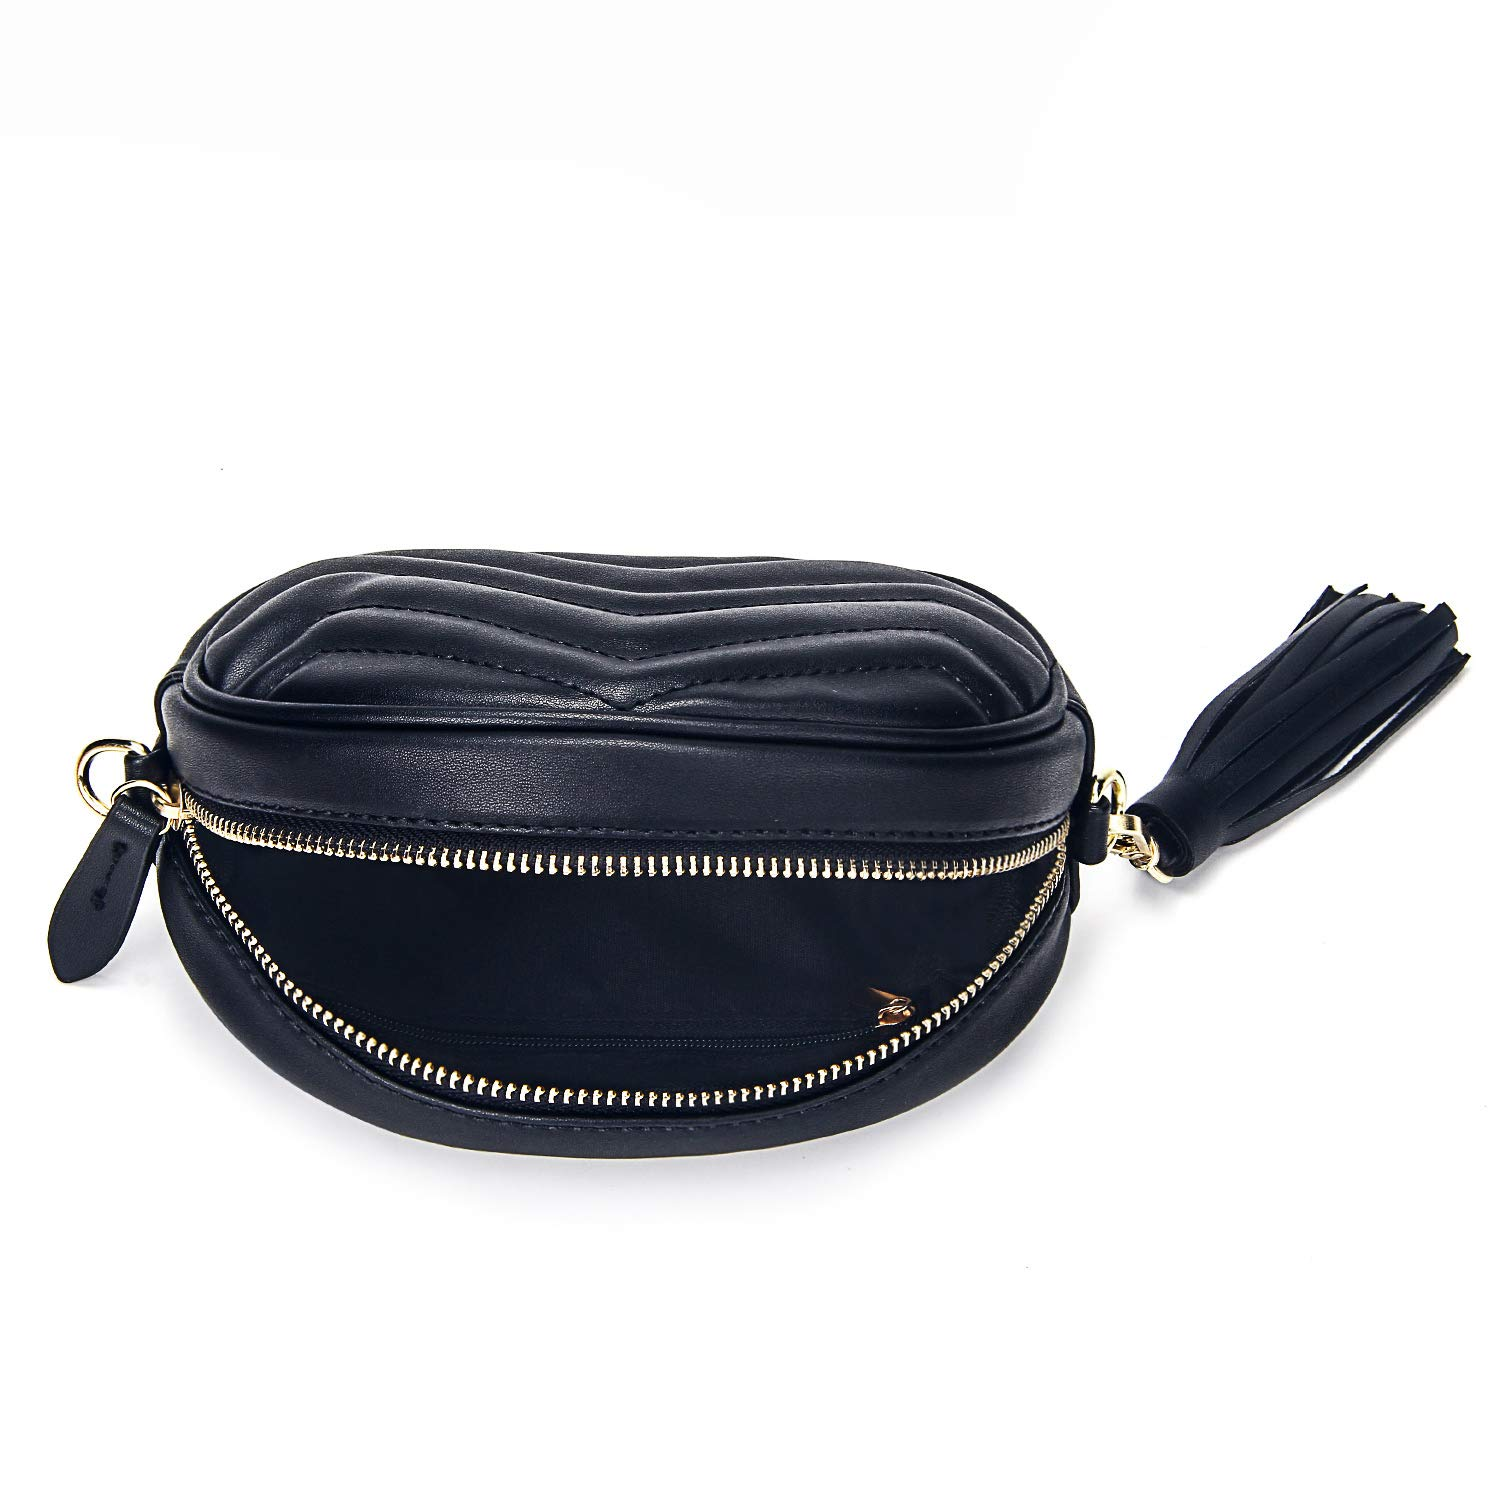 92cc28f9c8 Amazon.com: Fashion Fanny Waist Packs for Women Girls Stylish Bum Bag for  Ladies Waist Purse (Black): Shoes